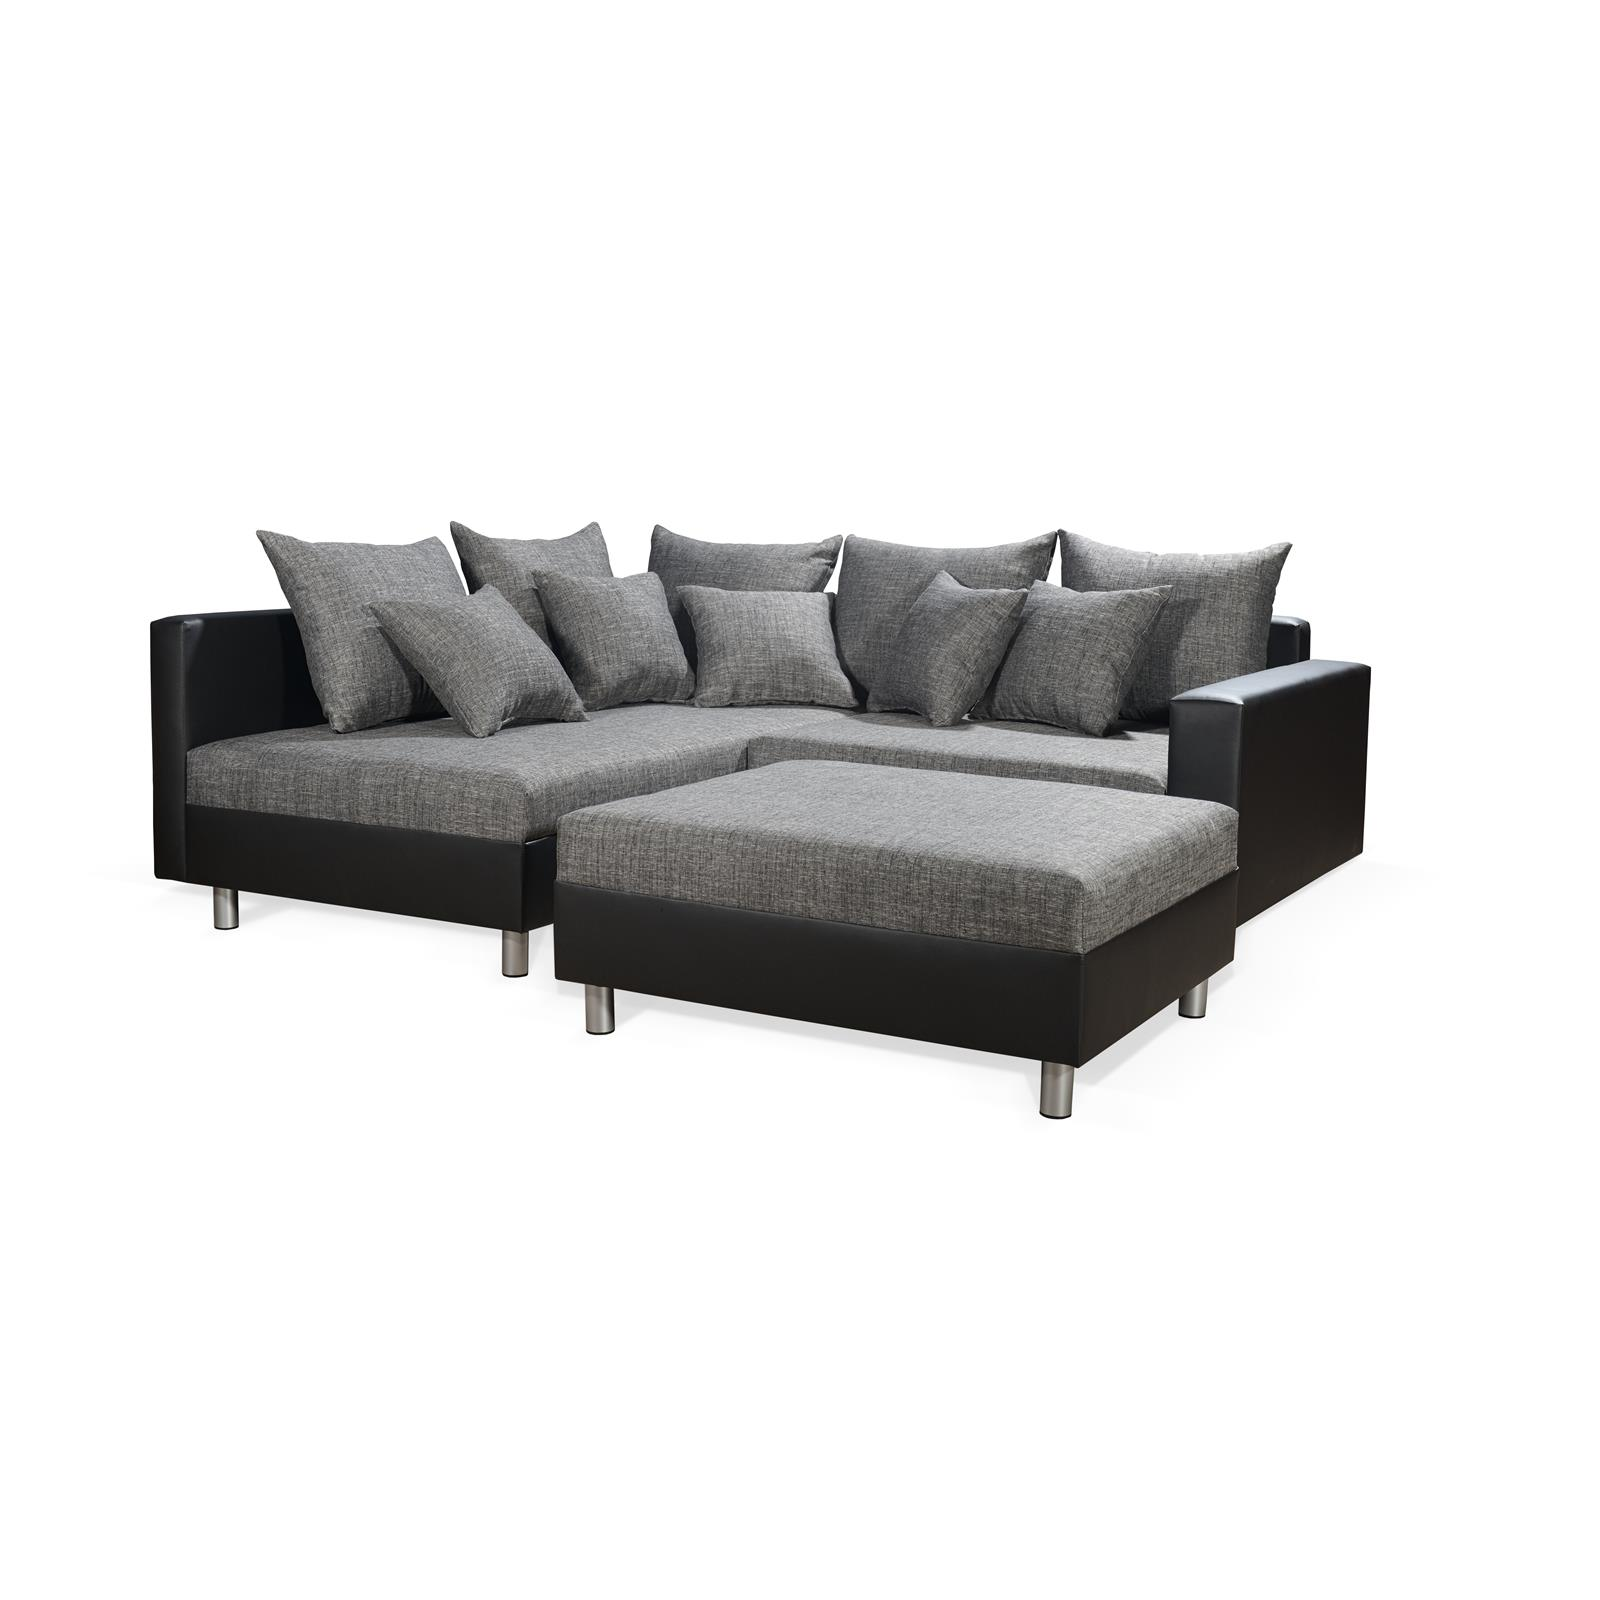 big sofa kolonialstil sofa design nadja smart sofa. Black Bedroom Furniture Sets. Home Design Ideas